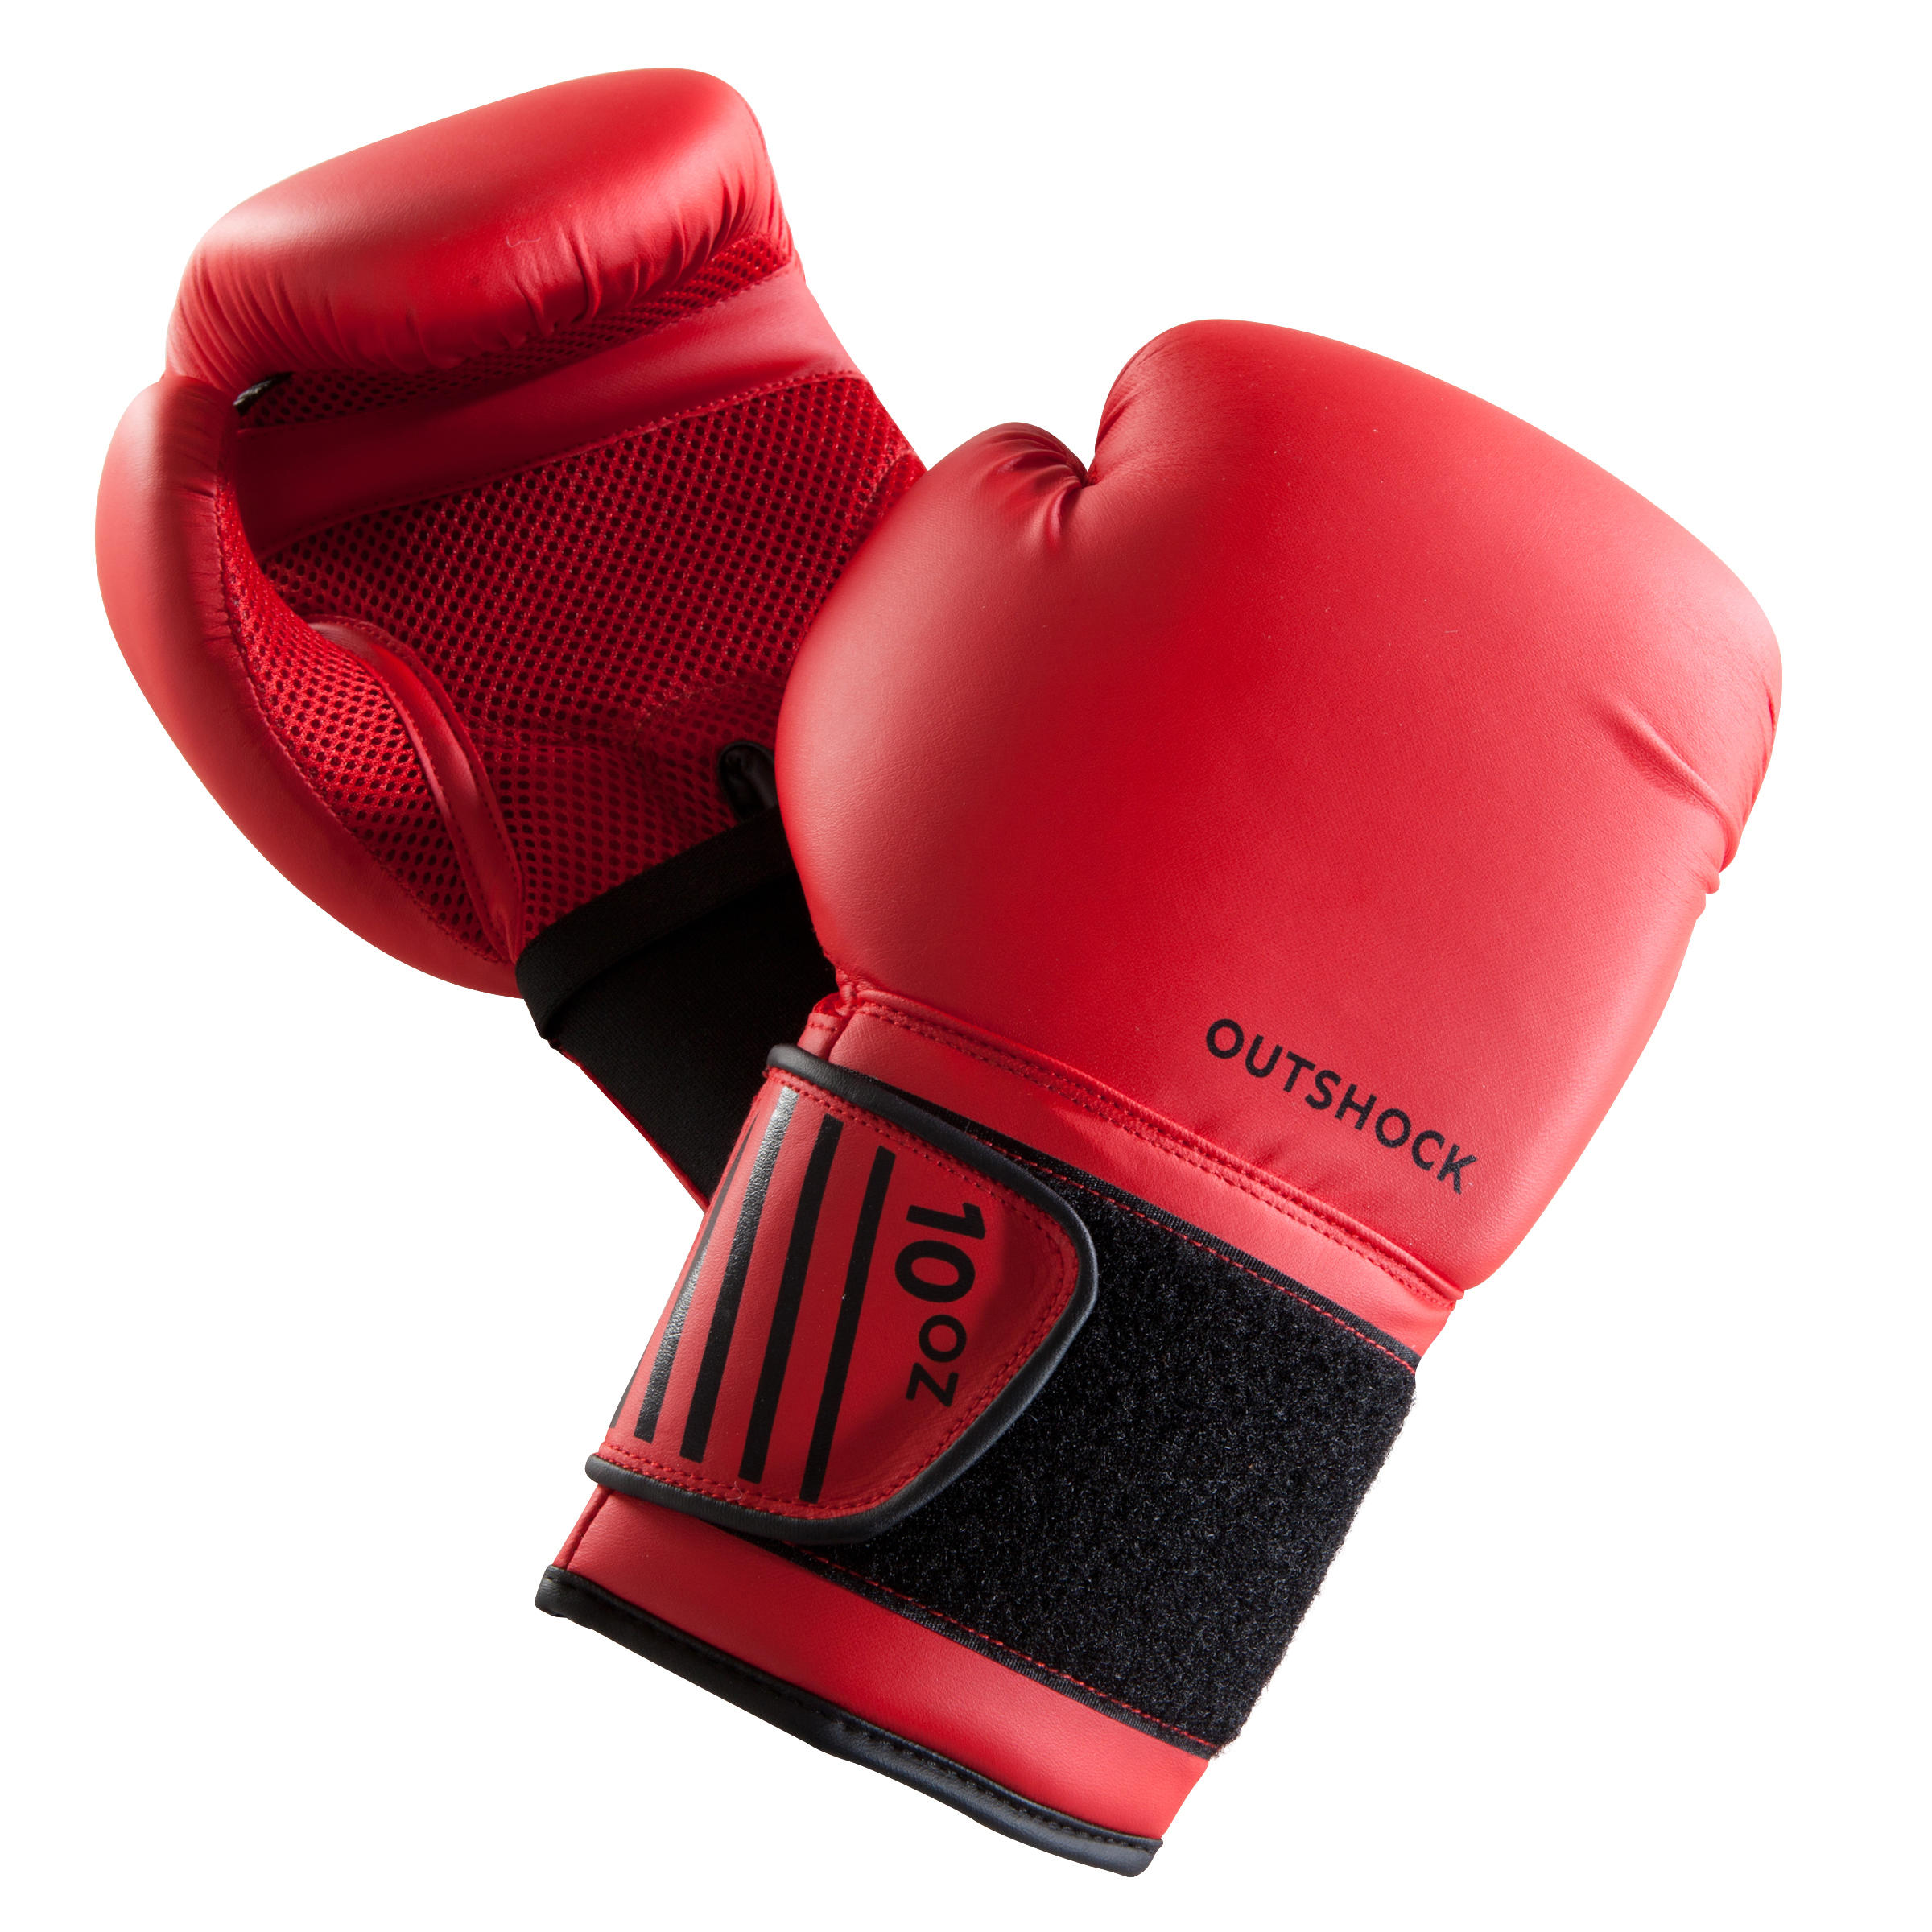 100 Adult Beginner Boxing Gloves - Red